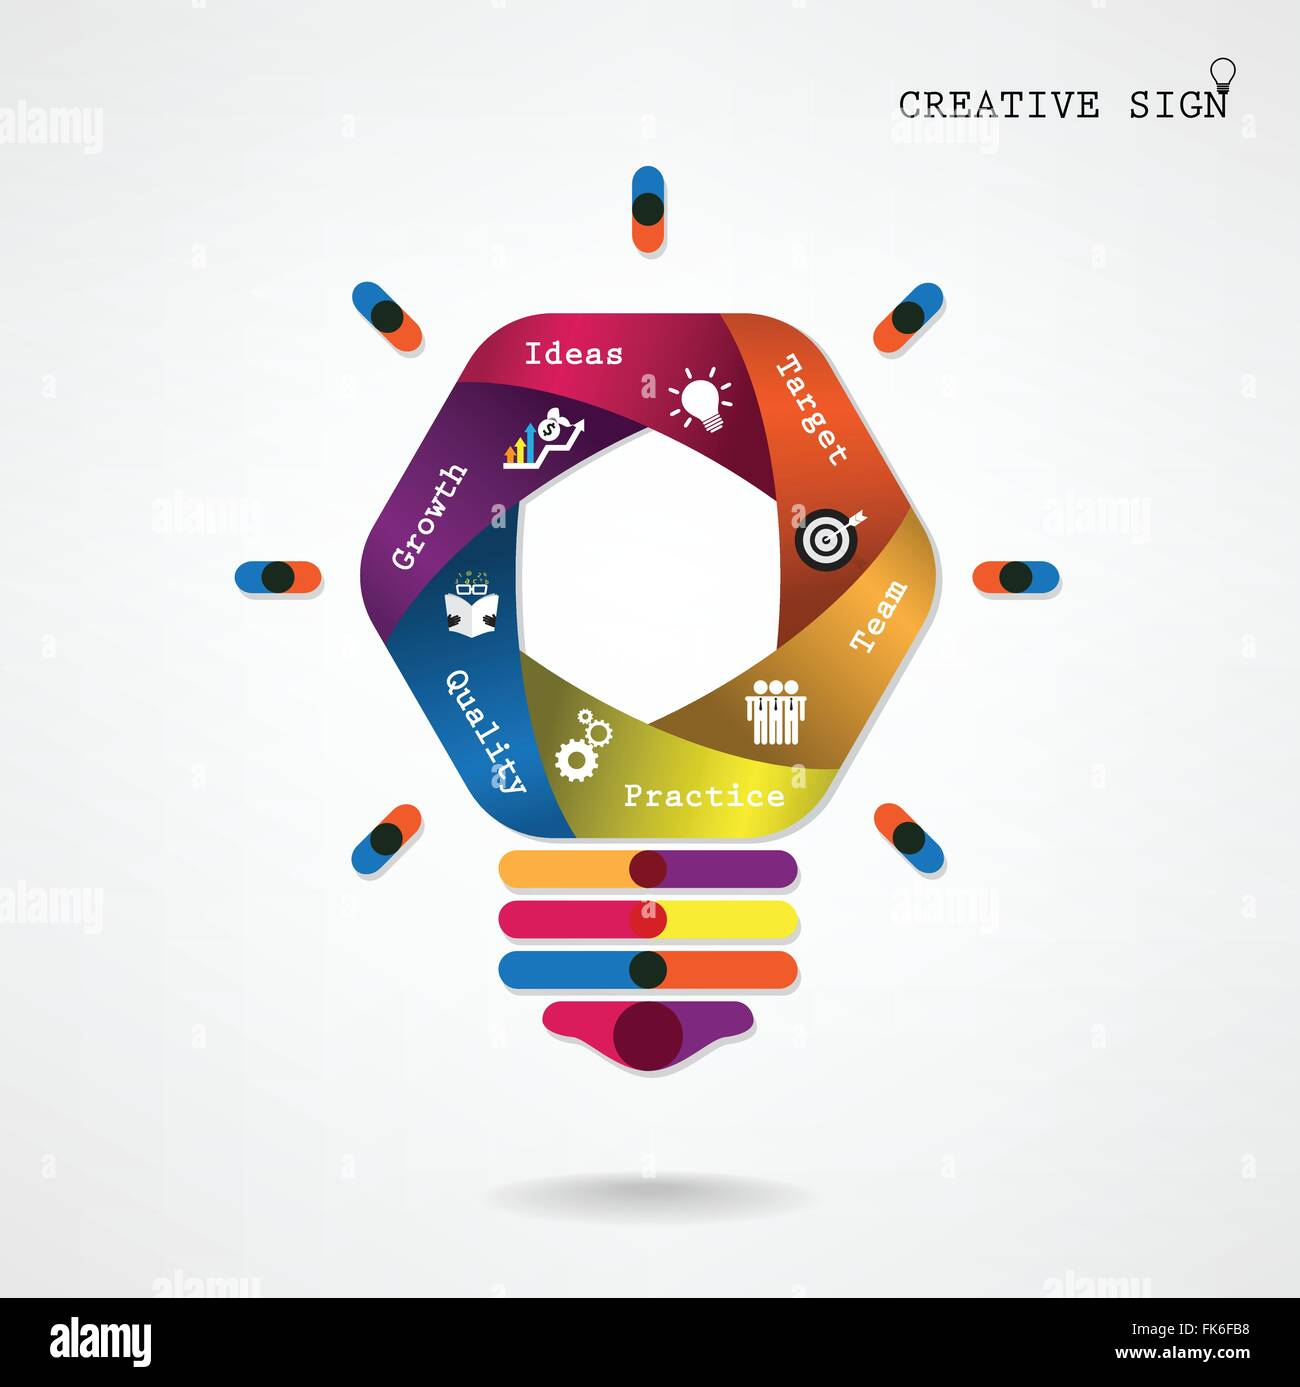 Poster design education - Creative Light Bulb Idea Concept Background Design For Poster Flyer Cover Brochure Business Idea Education Background